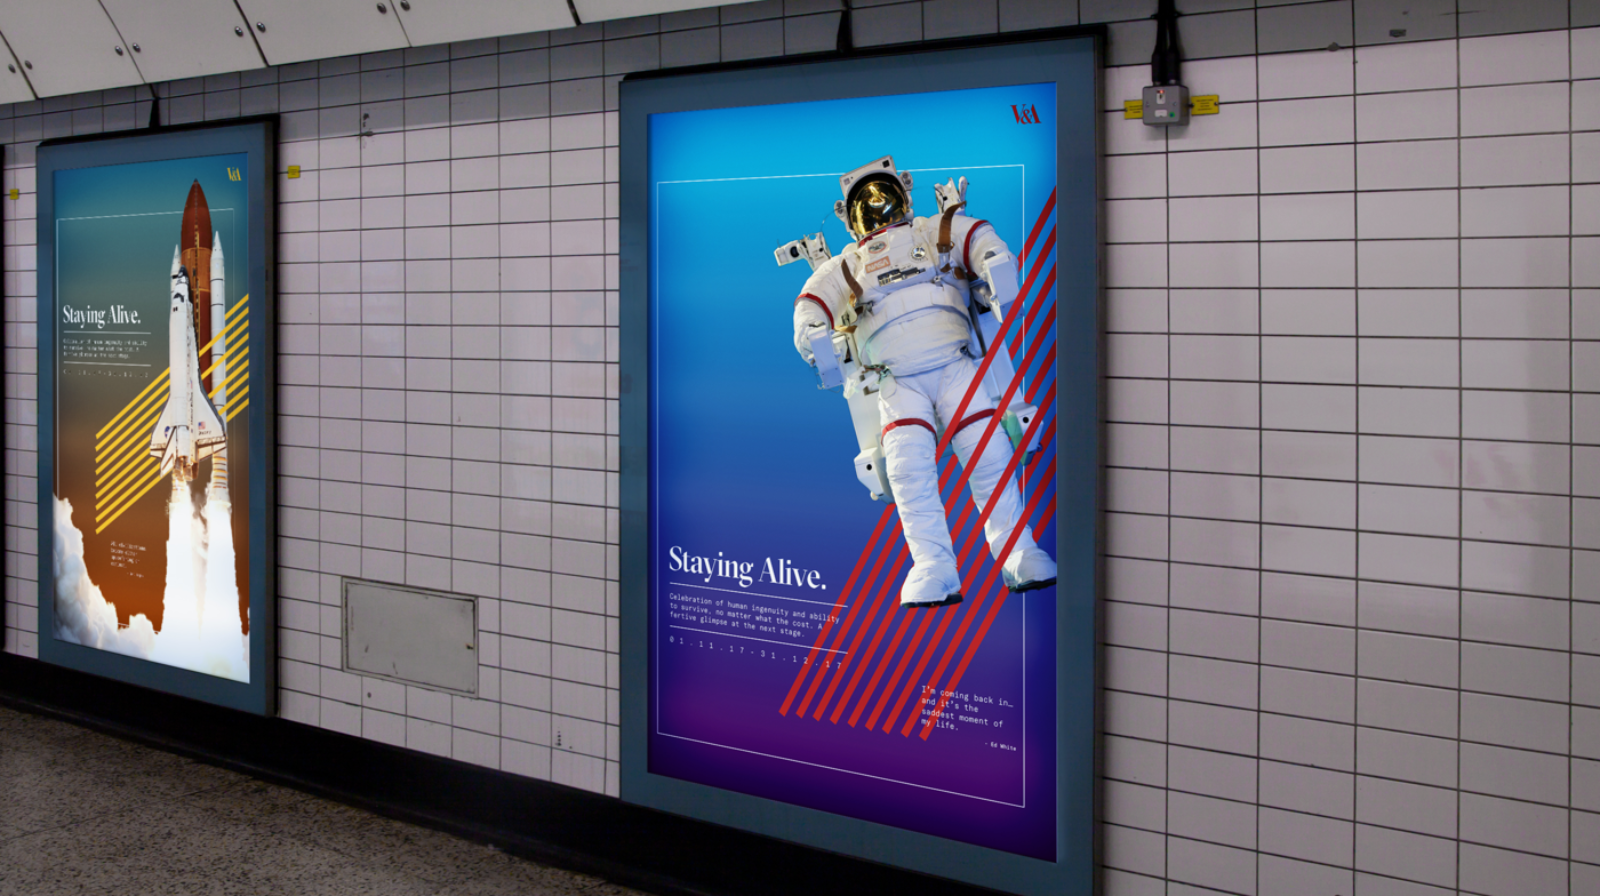 Static tube posters - 2 side by side.